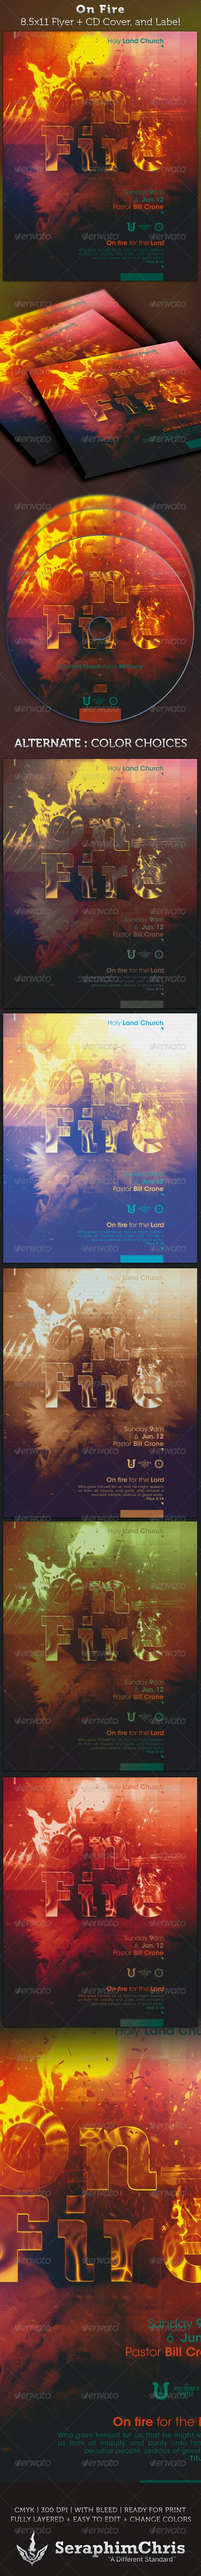 On Fire Full Page Flyer and CD Cover - Church Flyers